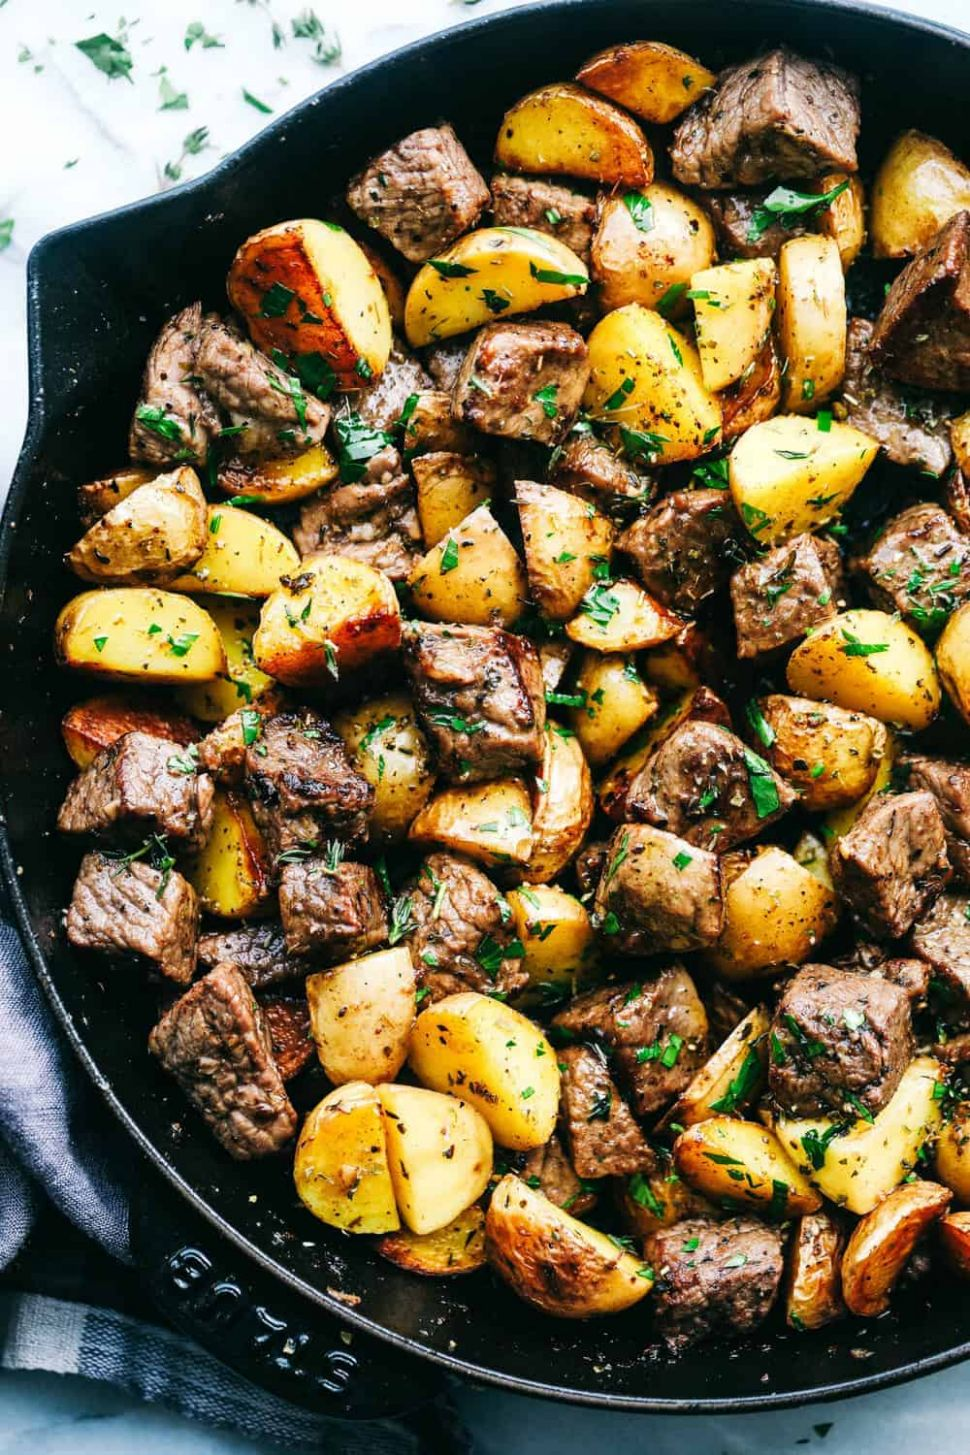 Garlic Butter Herb Steak Bites with Potatoes - Recipes With Beef Cubes And Potatoes